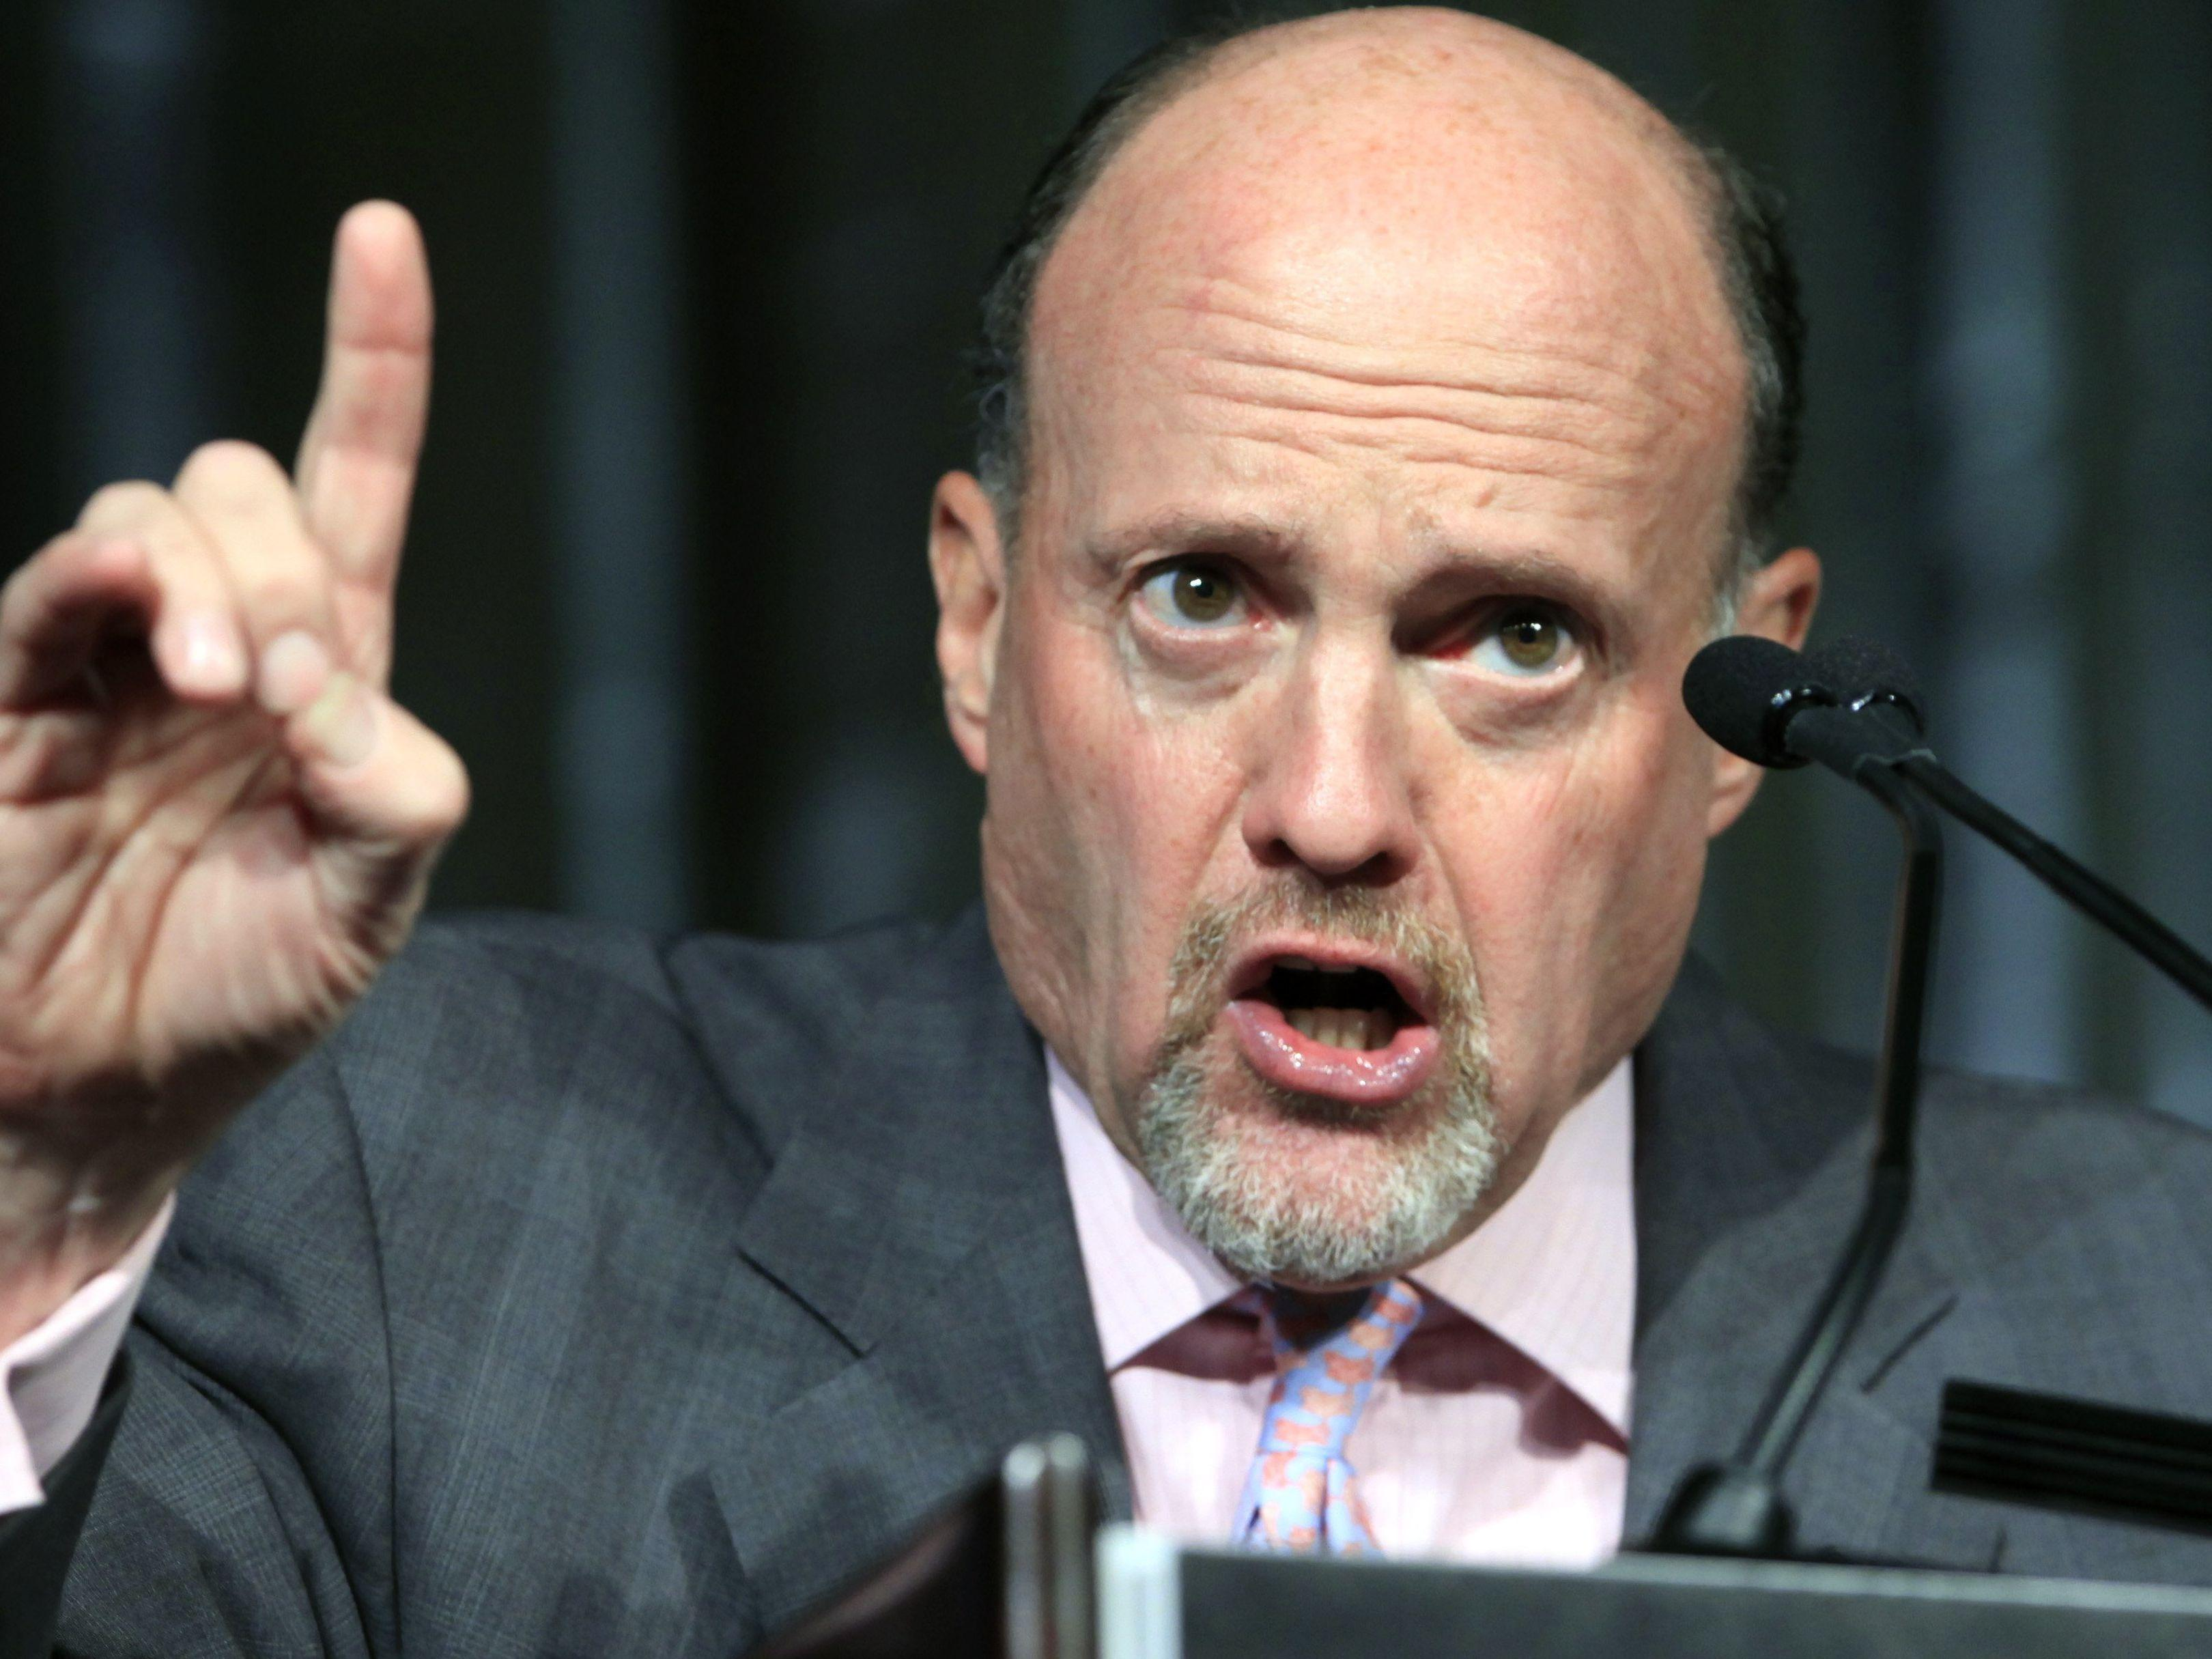 Here's where Jim Cramer says young people should invest their first $10,000